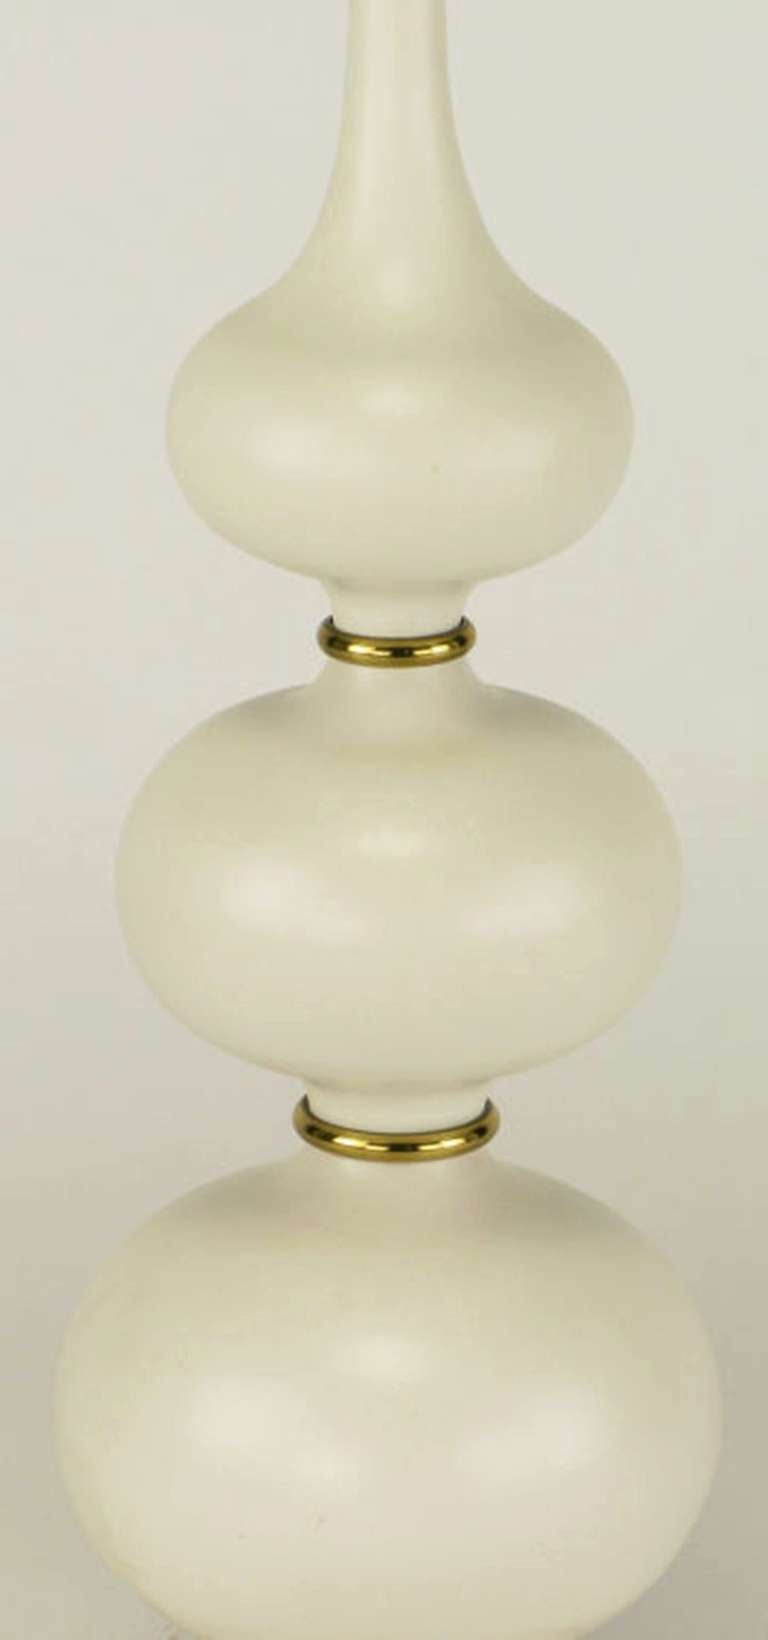 Gerald Thurston for Lightolier Triple Gourd-Form Table Lamp In Excellent Condition For Sale In Chicago, IL